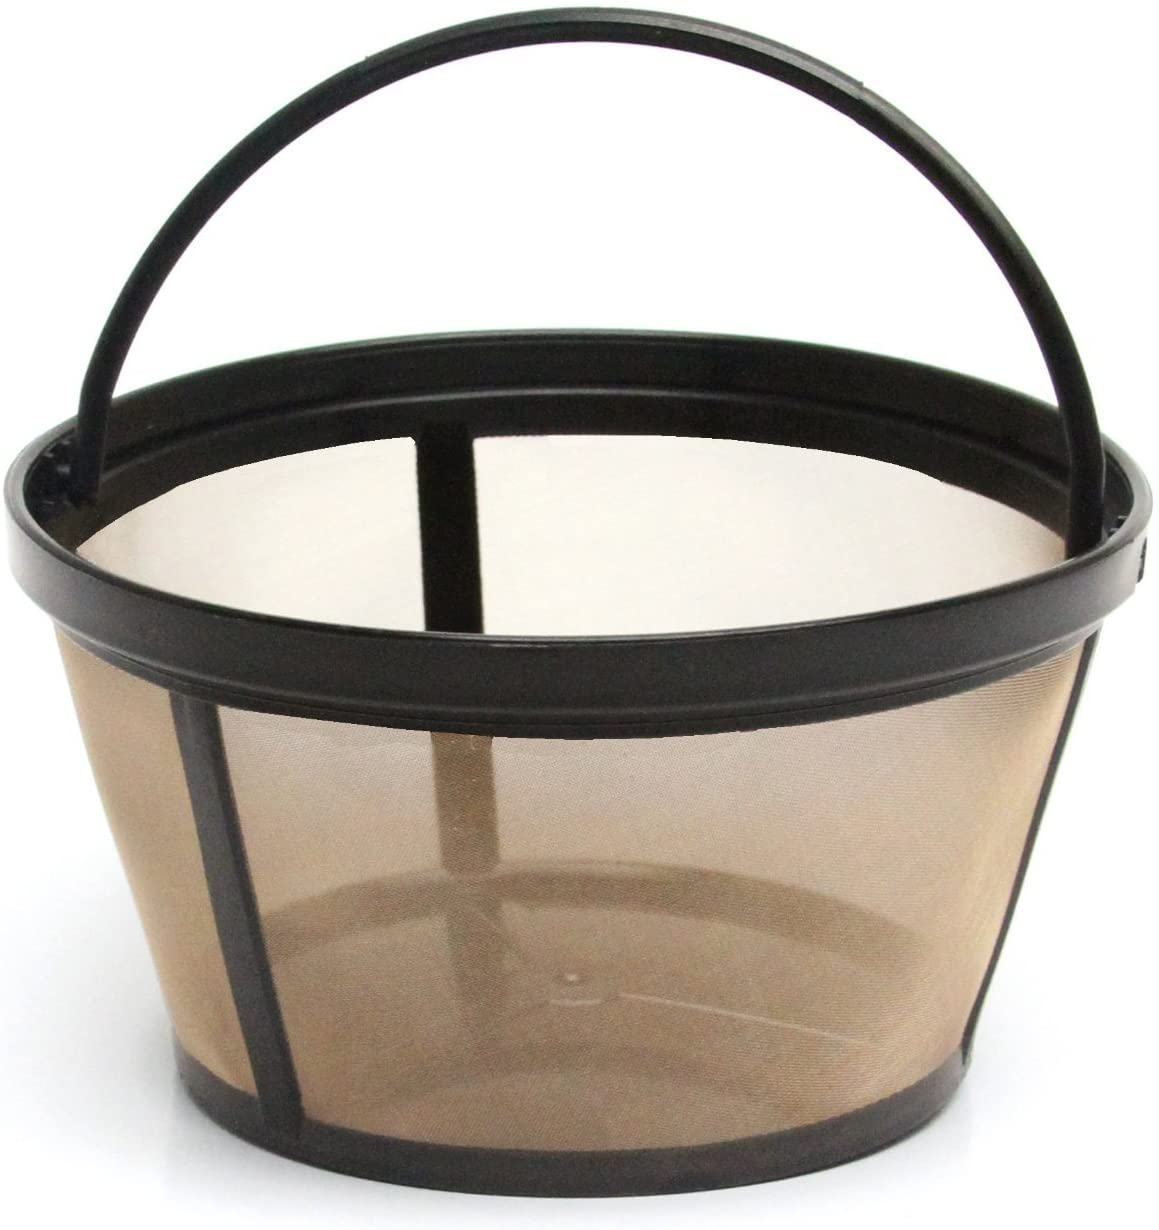 1 X 4-Cup Basket Style Permanent Coffee Filter Fits Mr. Coffee 4 Cup Coffeemakers (mit Handle)